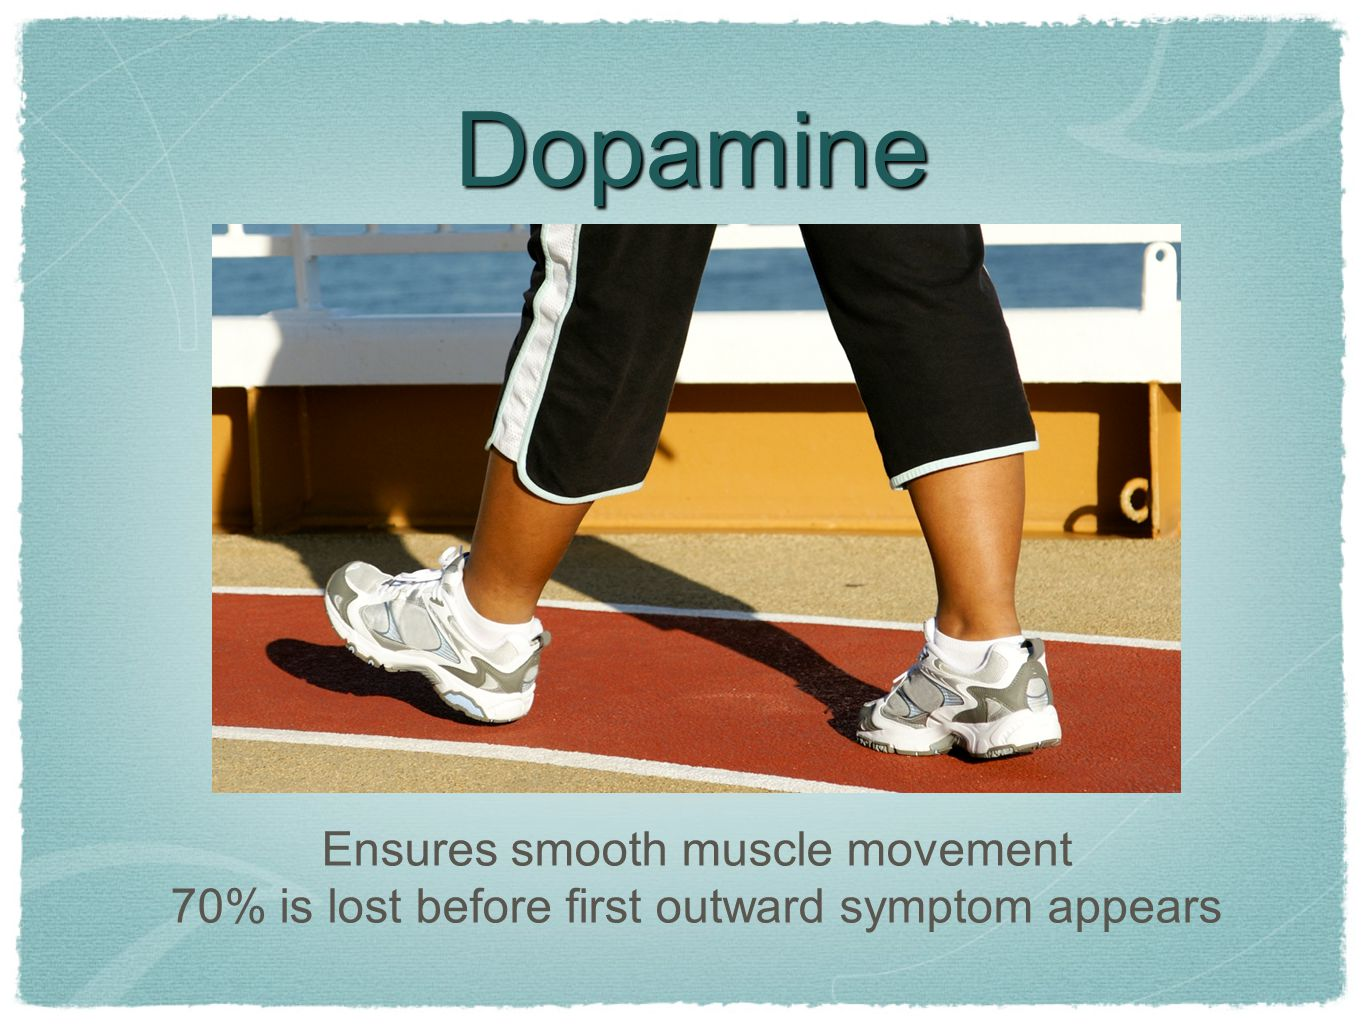 Dopamine Ensures smooth muscle movement